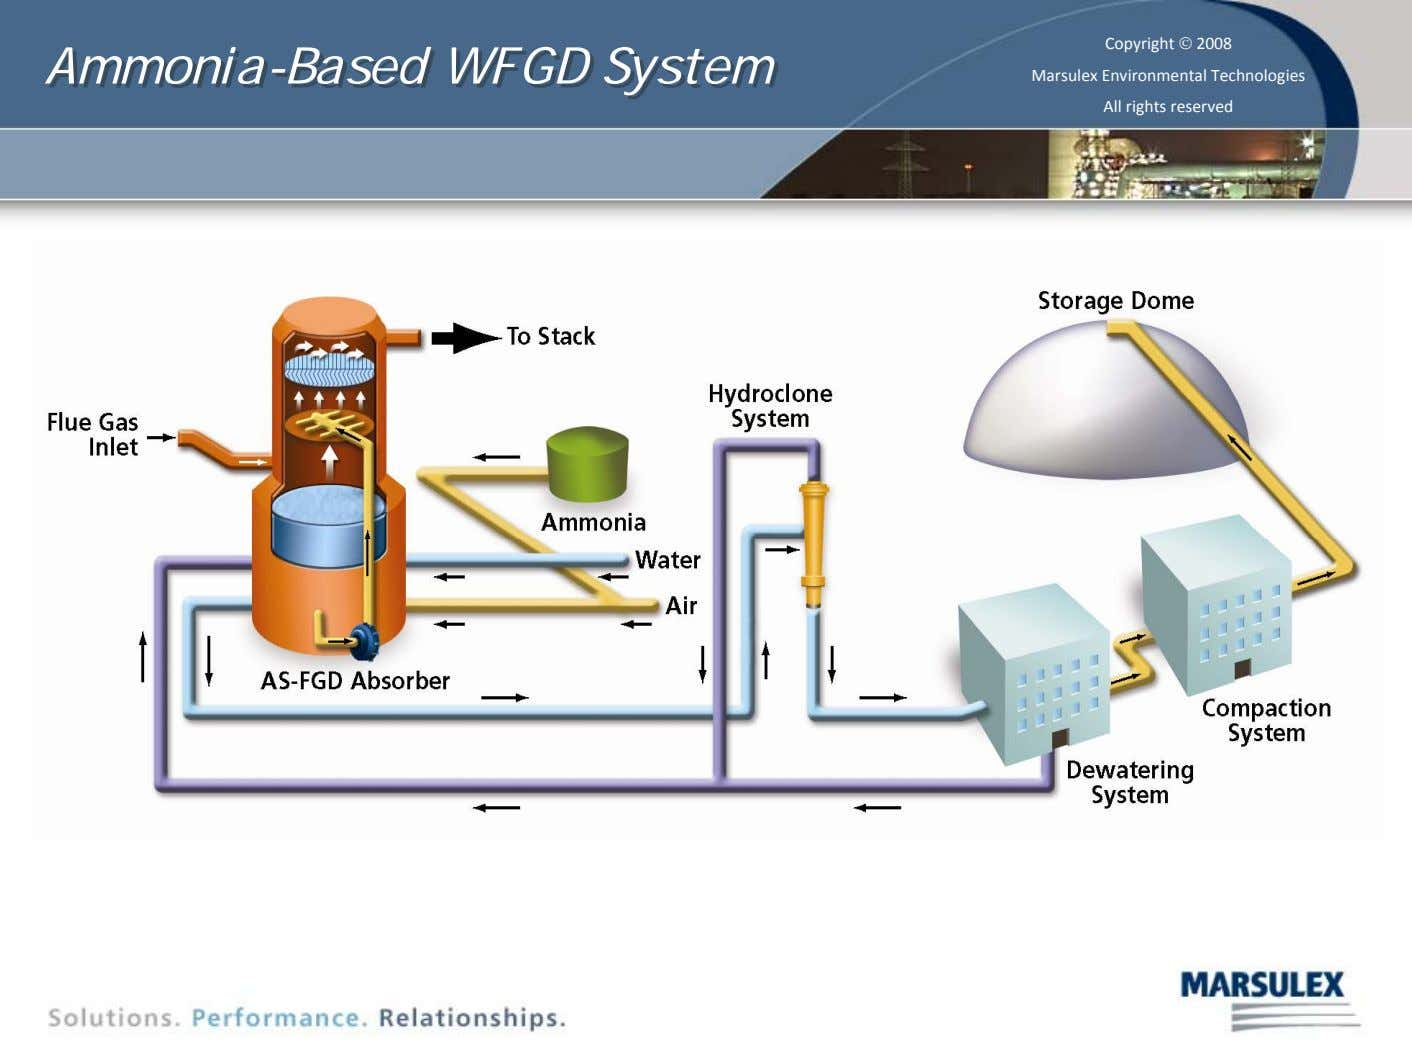 Ammonia-Based Ammonia-Based WFGD WFGD System System Copyright © 2008 Marsulex Environmental Technologies All rights reserved 11